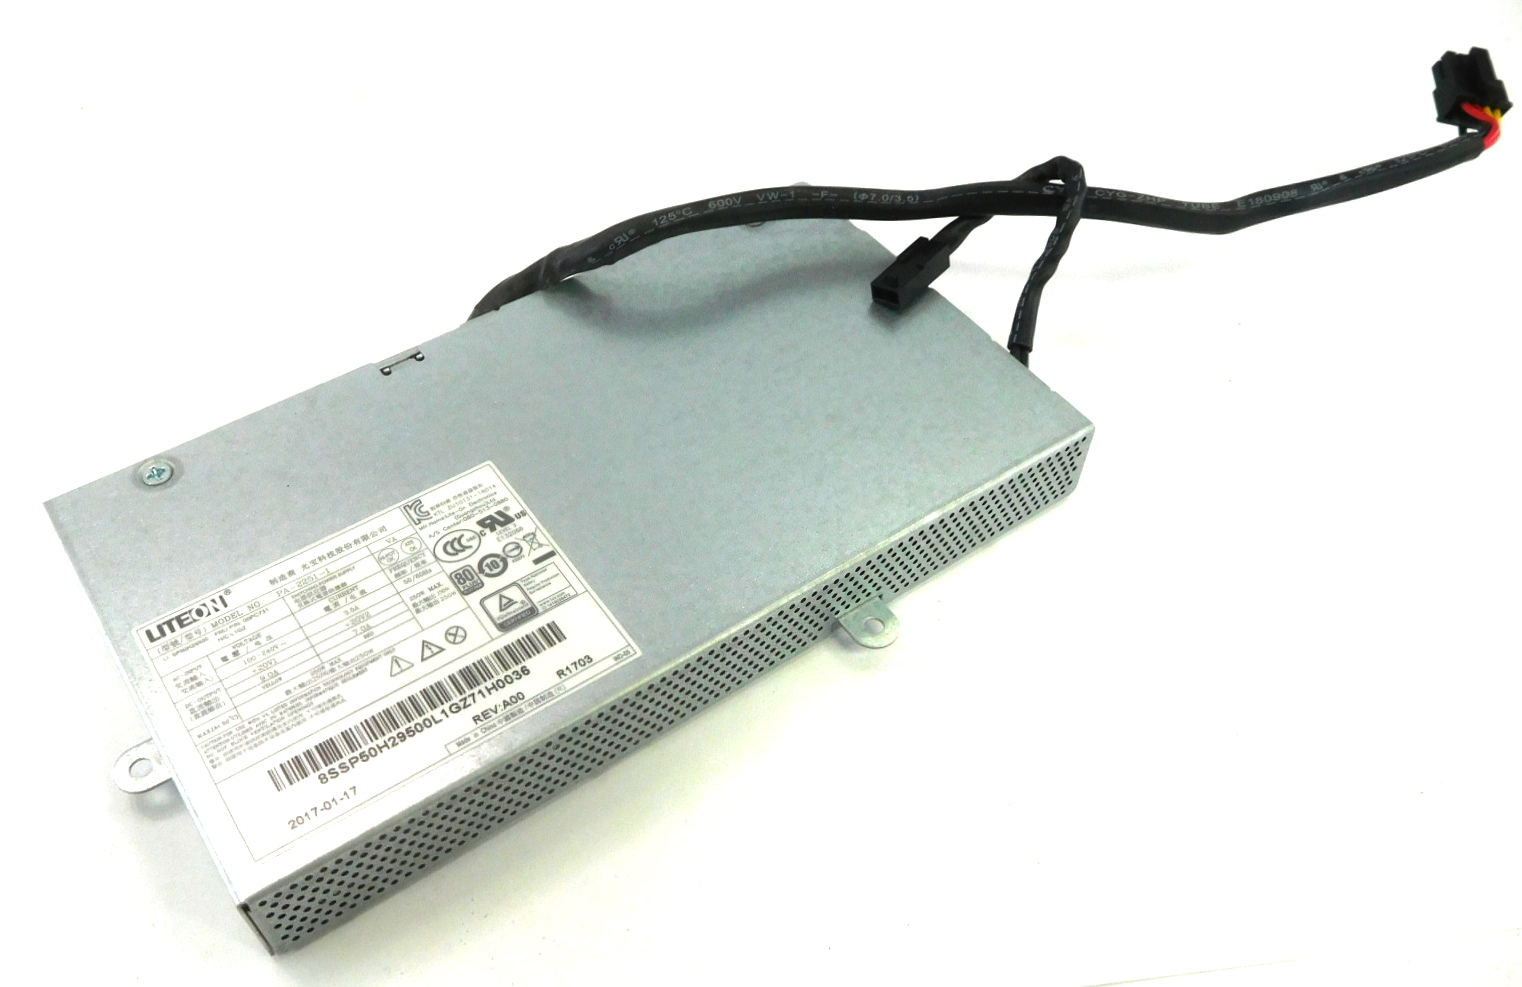 PA-2251-1 VA LiteOn 250W Power Supply /f Lenovo IdeaCentre 720-24IKB AIO PC